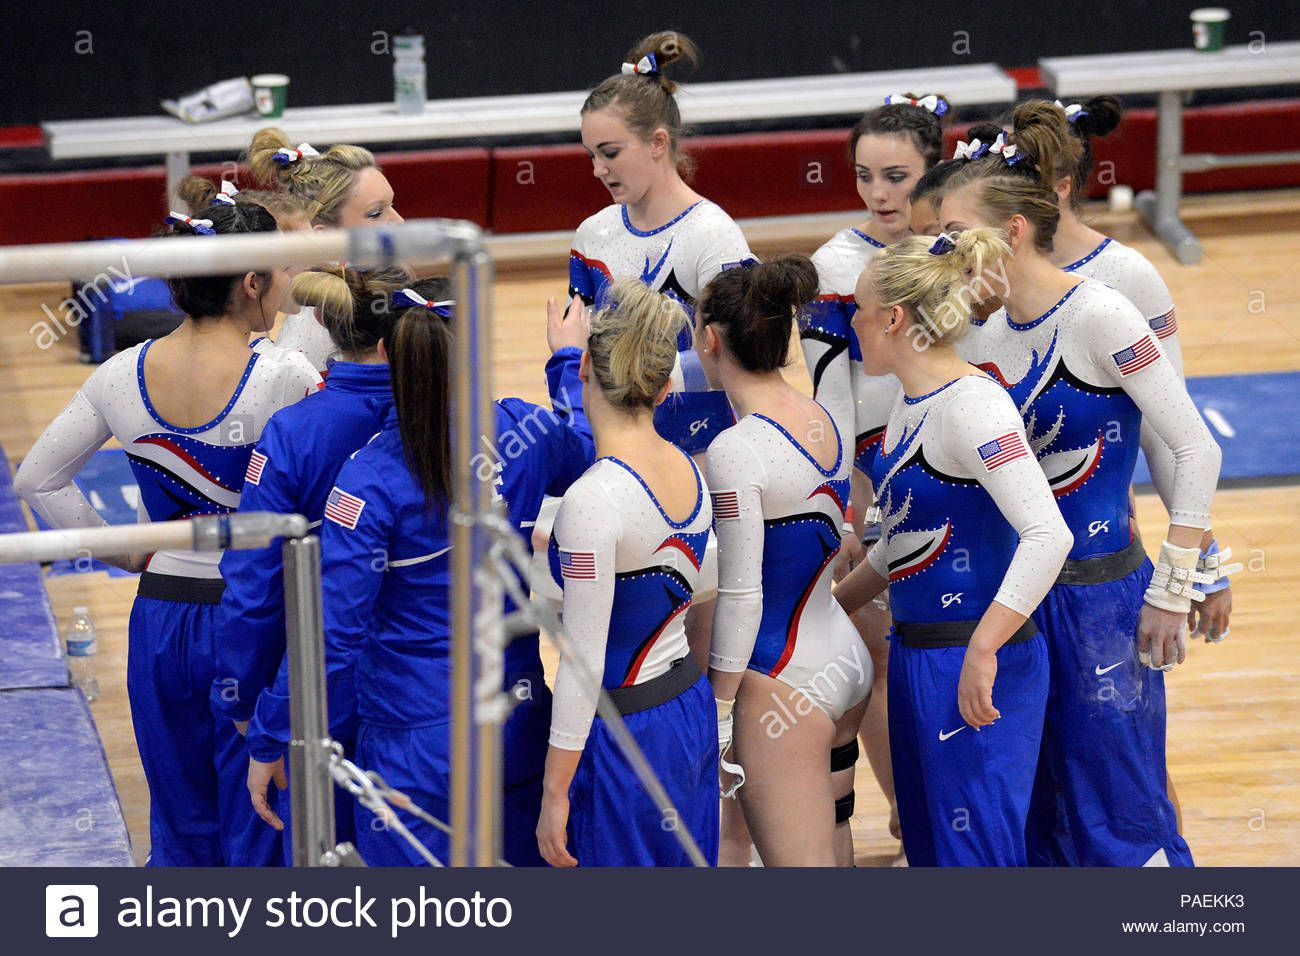 Download This Stock Image The U S Air Force Academy Women S Gymnastics Team Joins Up Before Starting The Uneven Bar Female Gymnast Gymnastics Team Gymnastics